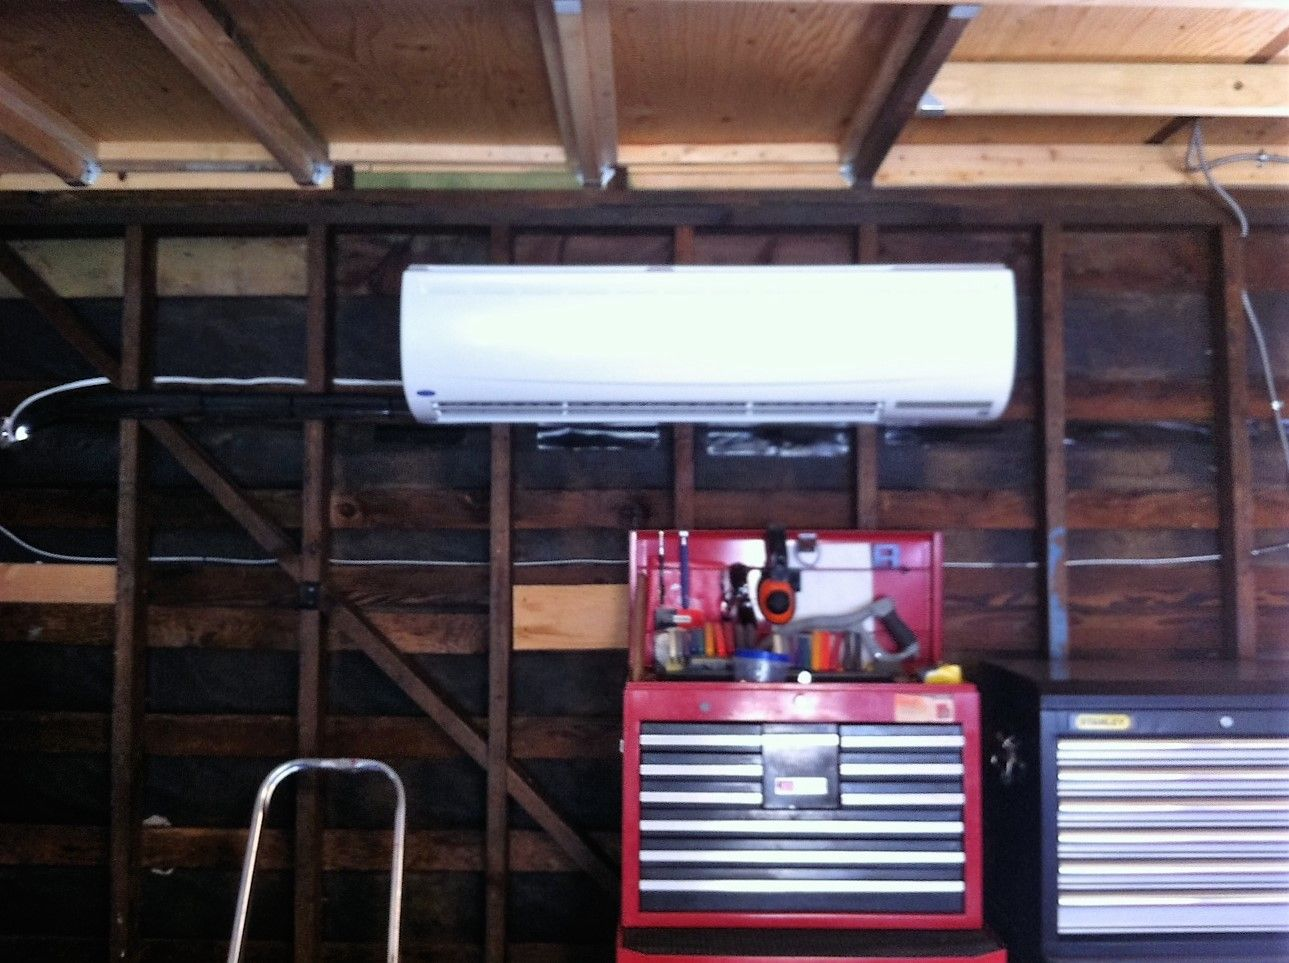 One of our customers wanted his garage air conditioned